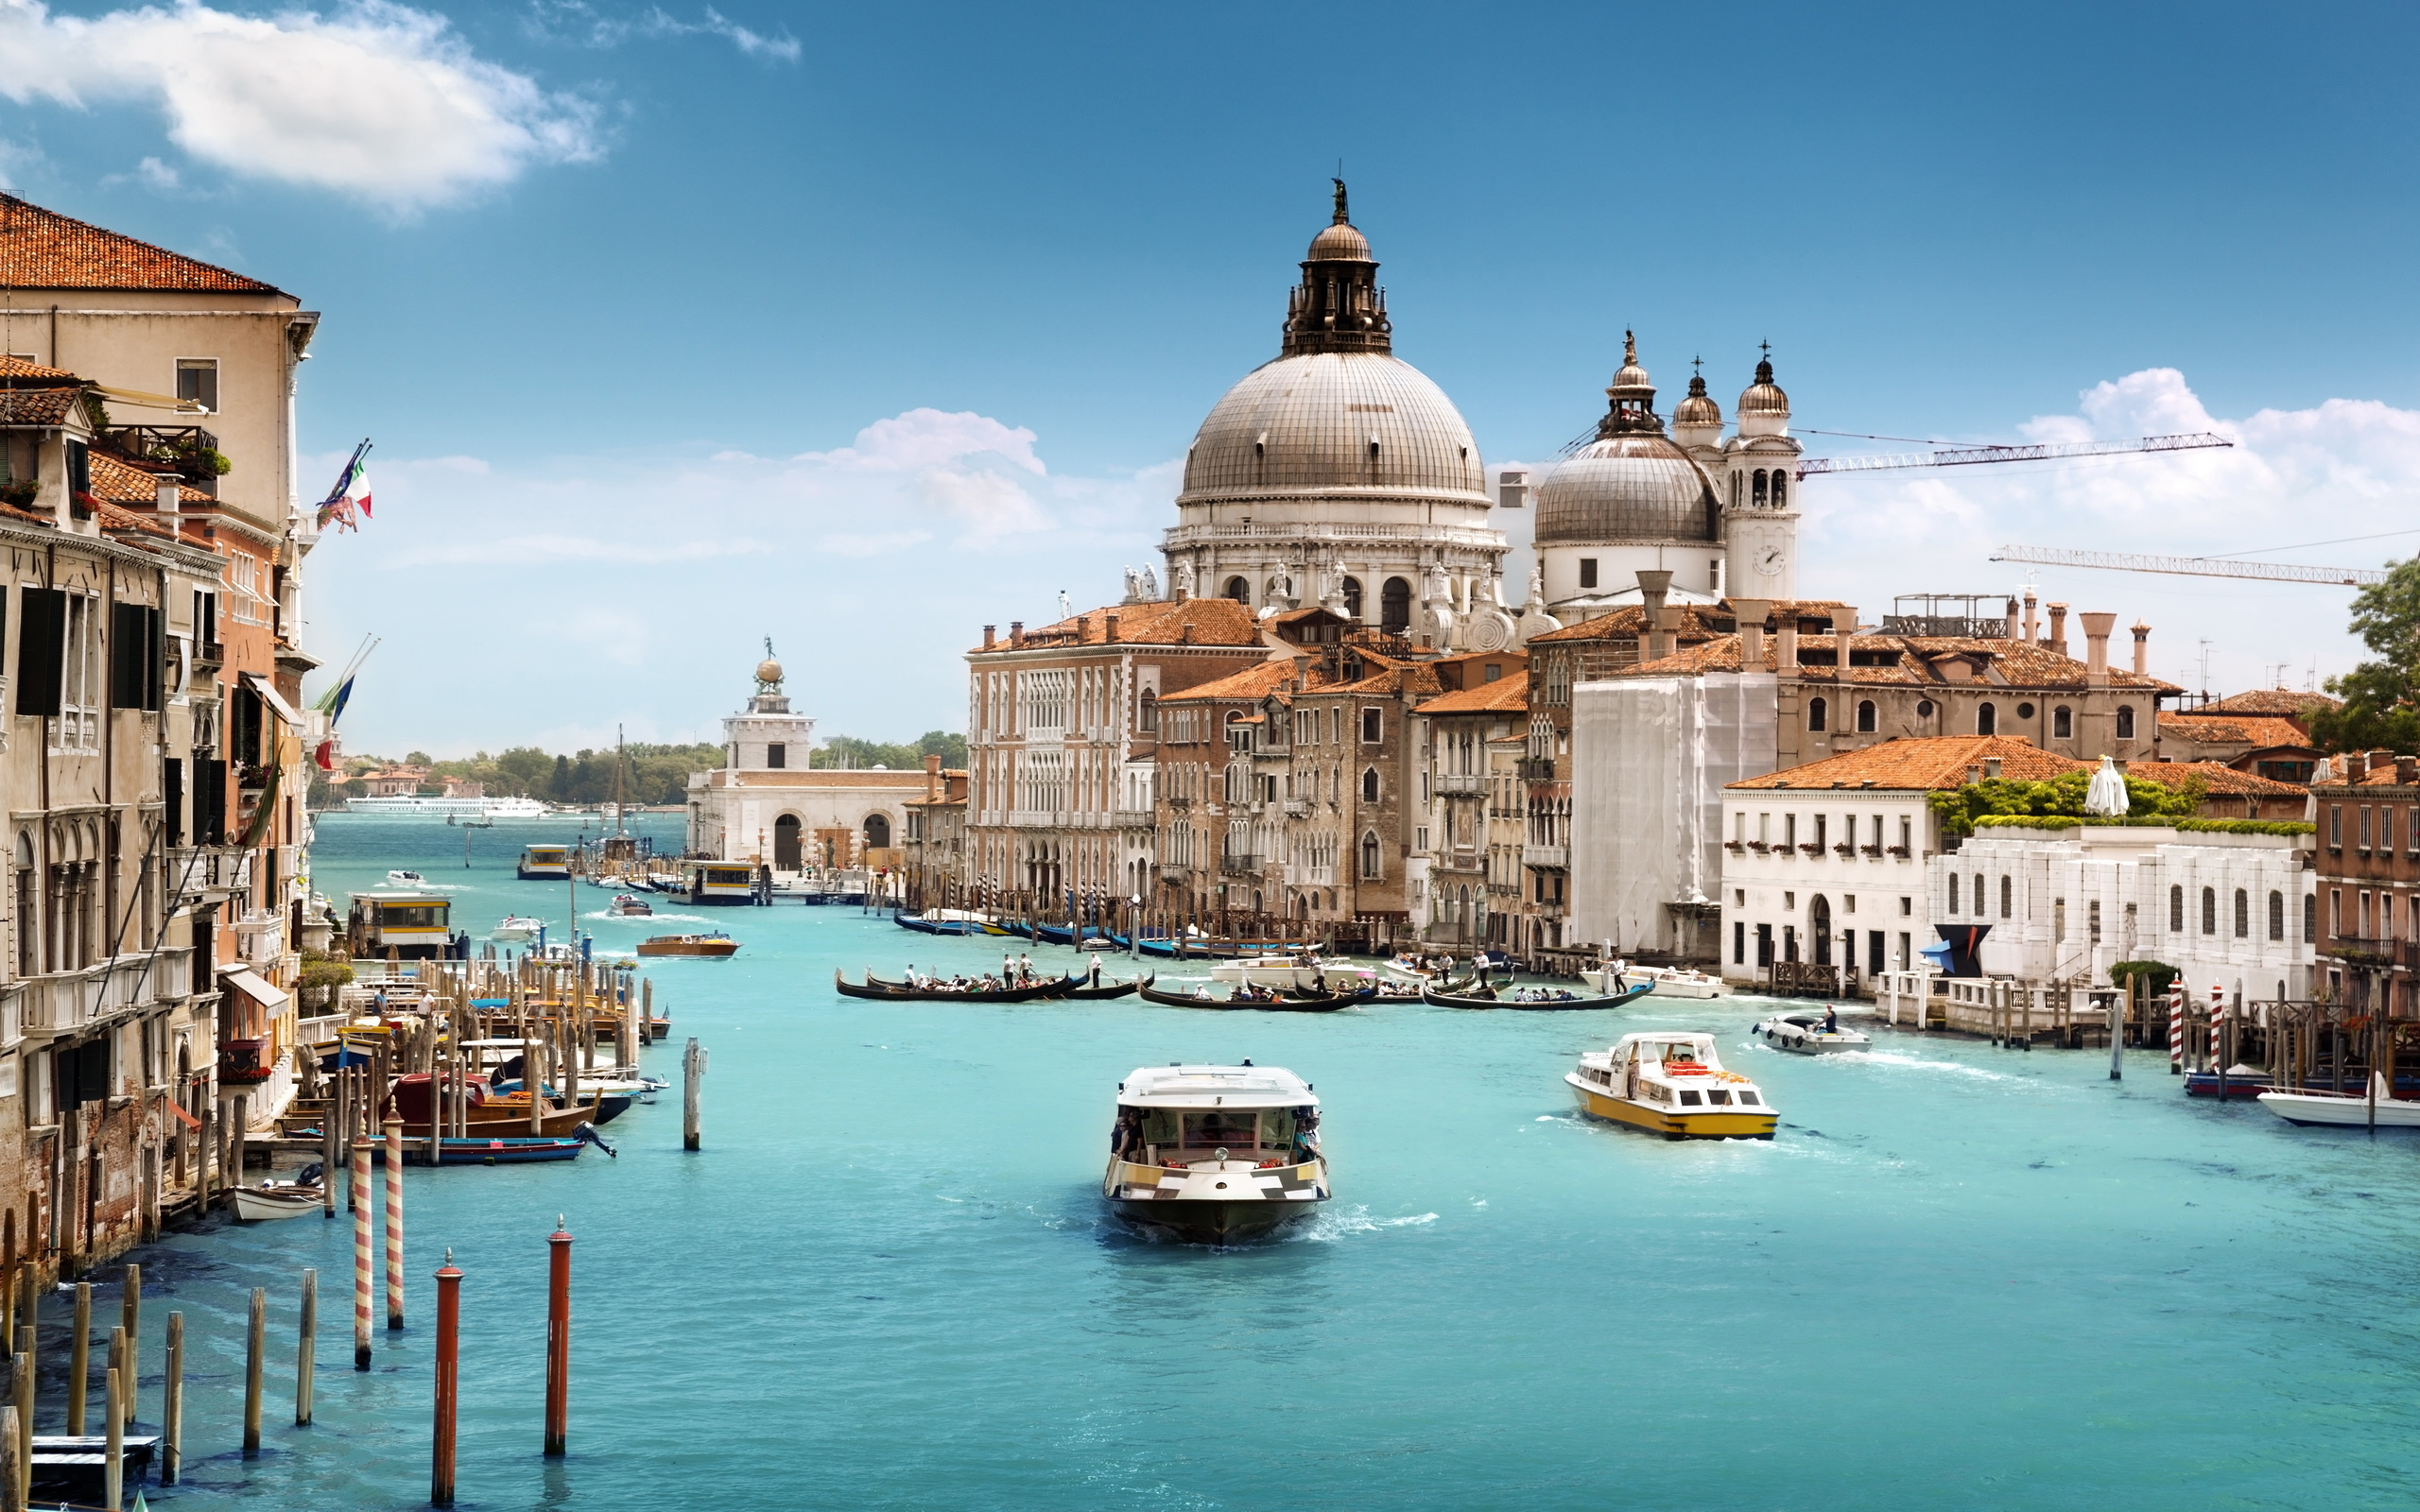 Wallpapers Of Italy The Grand Canal Of Venice Italy Hd Wallpaper Background Image